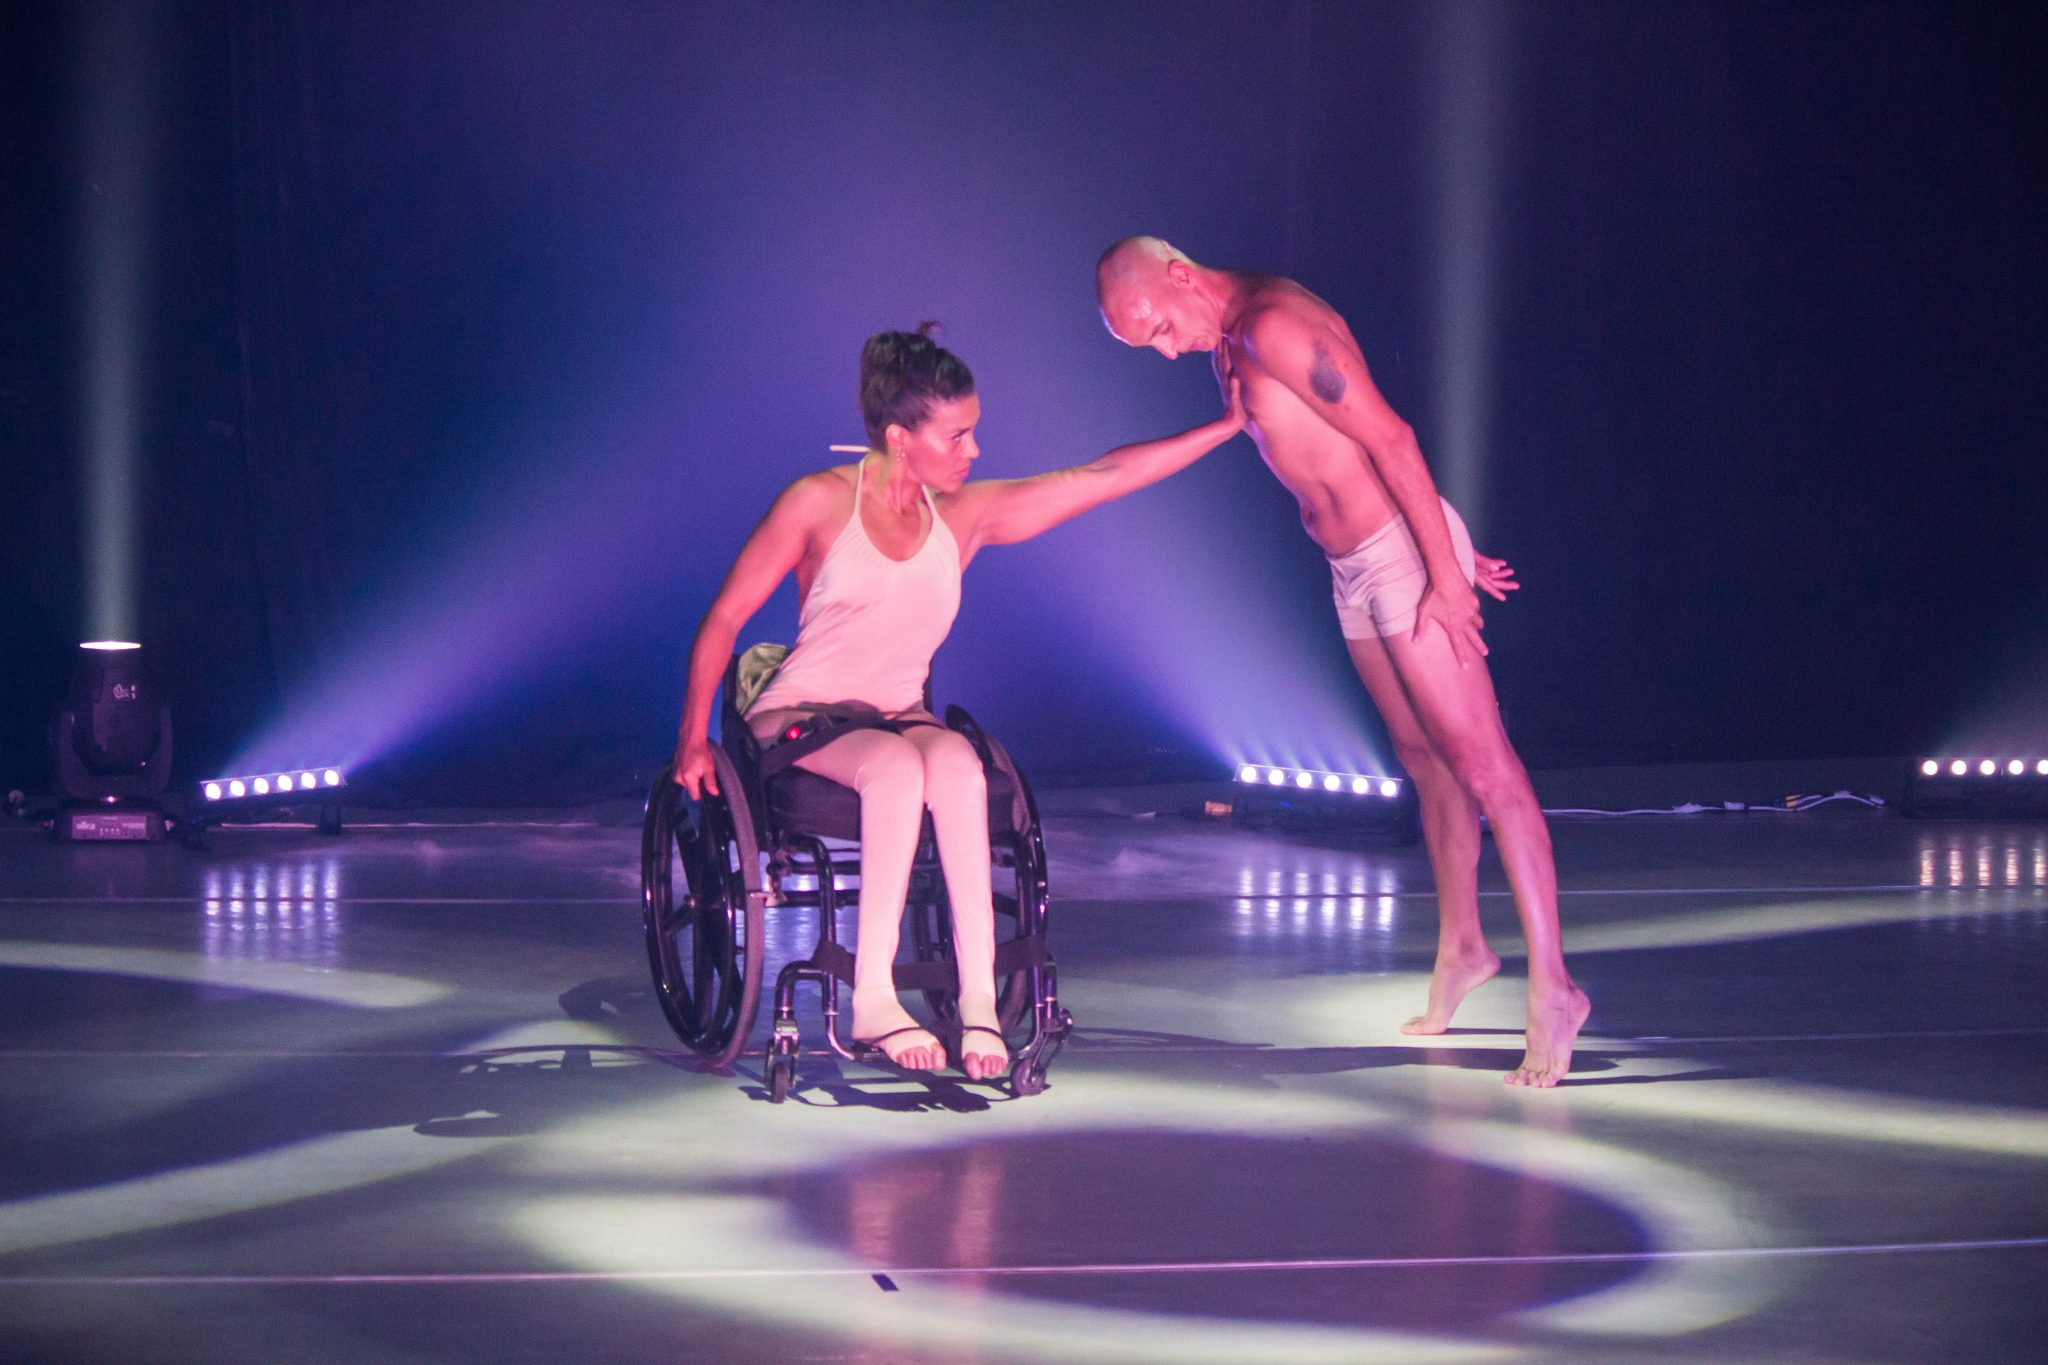 Image of two dancers on a stage cast in pink and blue light. Dancer Fabiola Zérega is sitting in a wheelchair wearing a white/pink full-body leotard. She has one arm on the wheel of her chair, the other is extended, pressing against the chest of the other dancer, looking at her hand. The second dancer is bald, wearing white/pink shorts. They are standing on their toes, looking down and leaning forward supported by Fabiola's hand on their chest.